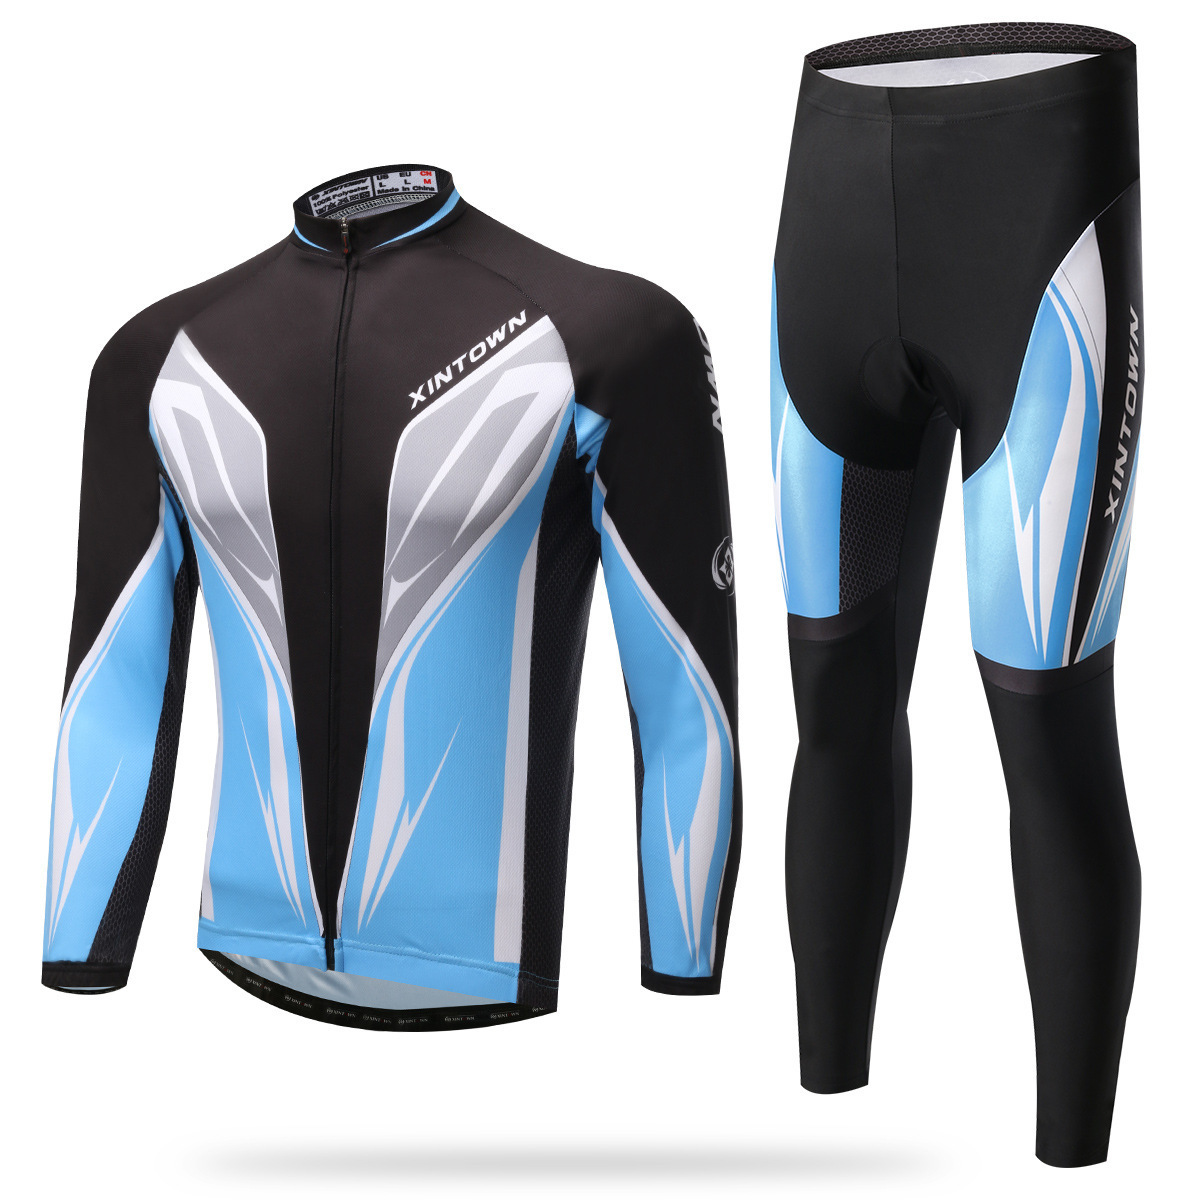 XINTOWN Pro Team Cycling Jersey Set Long Sleeve Bicycle Bike Clothing Ropa Ciclismo Cycling Cothing Set Spring Autumn Pockets 2017 pro team fdj spring long sleeve cycling jerseys bicycle maillot breathable ropa ciclismo mtb quick dry bike clothing 3d gel